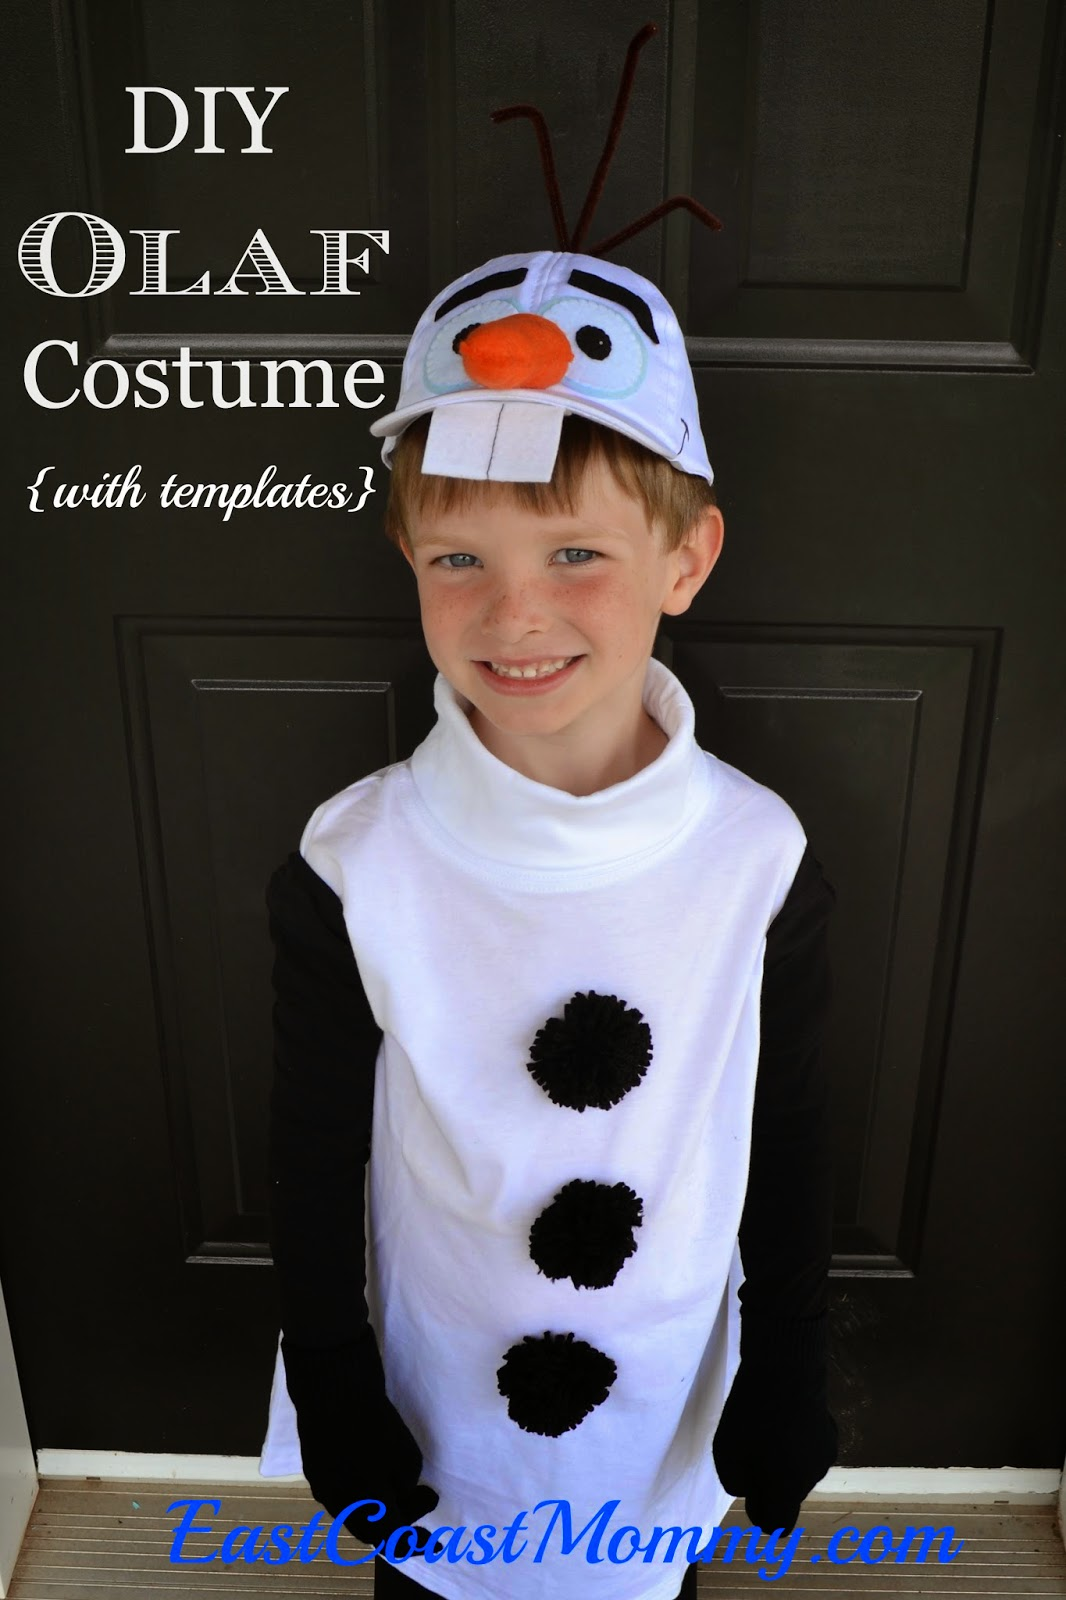 East coast mommy diy olaf costume i knew it would be difficult to come up with a diy olaf costume for him to wear but i couldnt be more pleased with how it turned out solutioingenieria Image collections